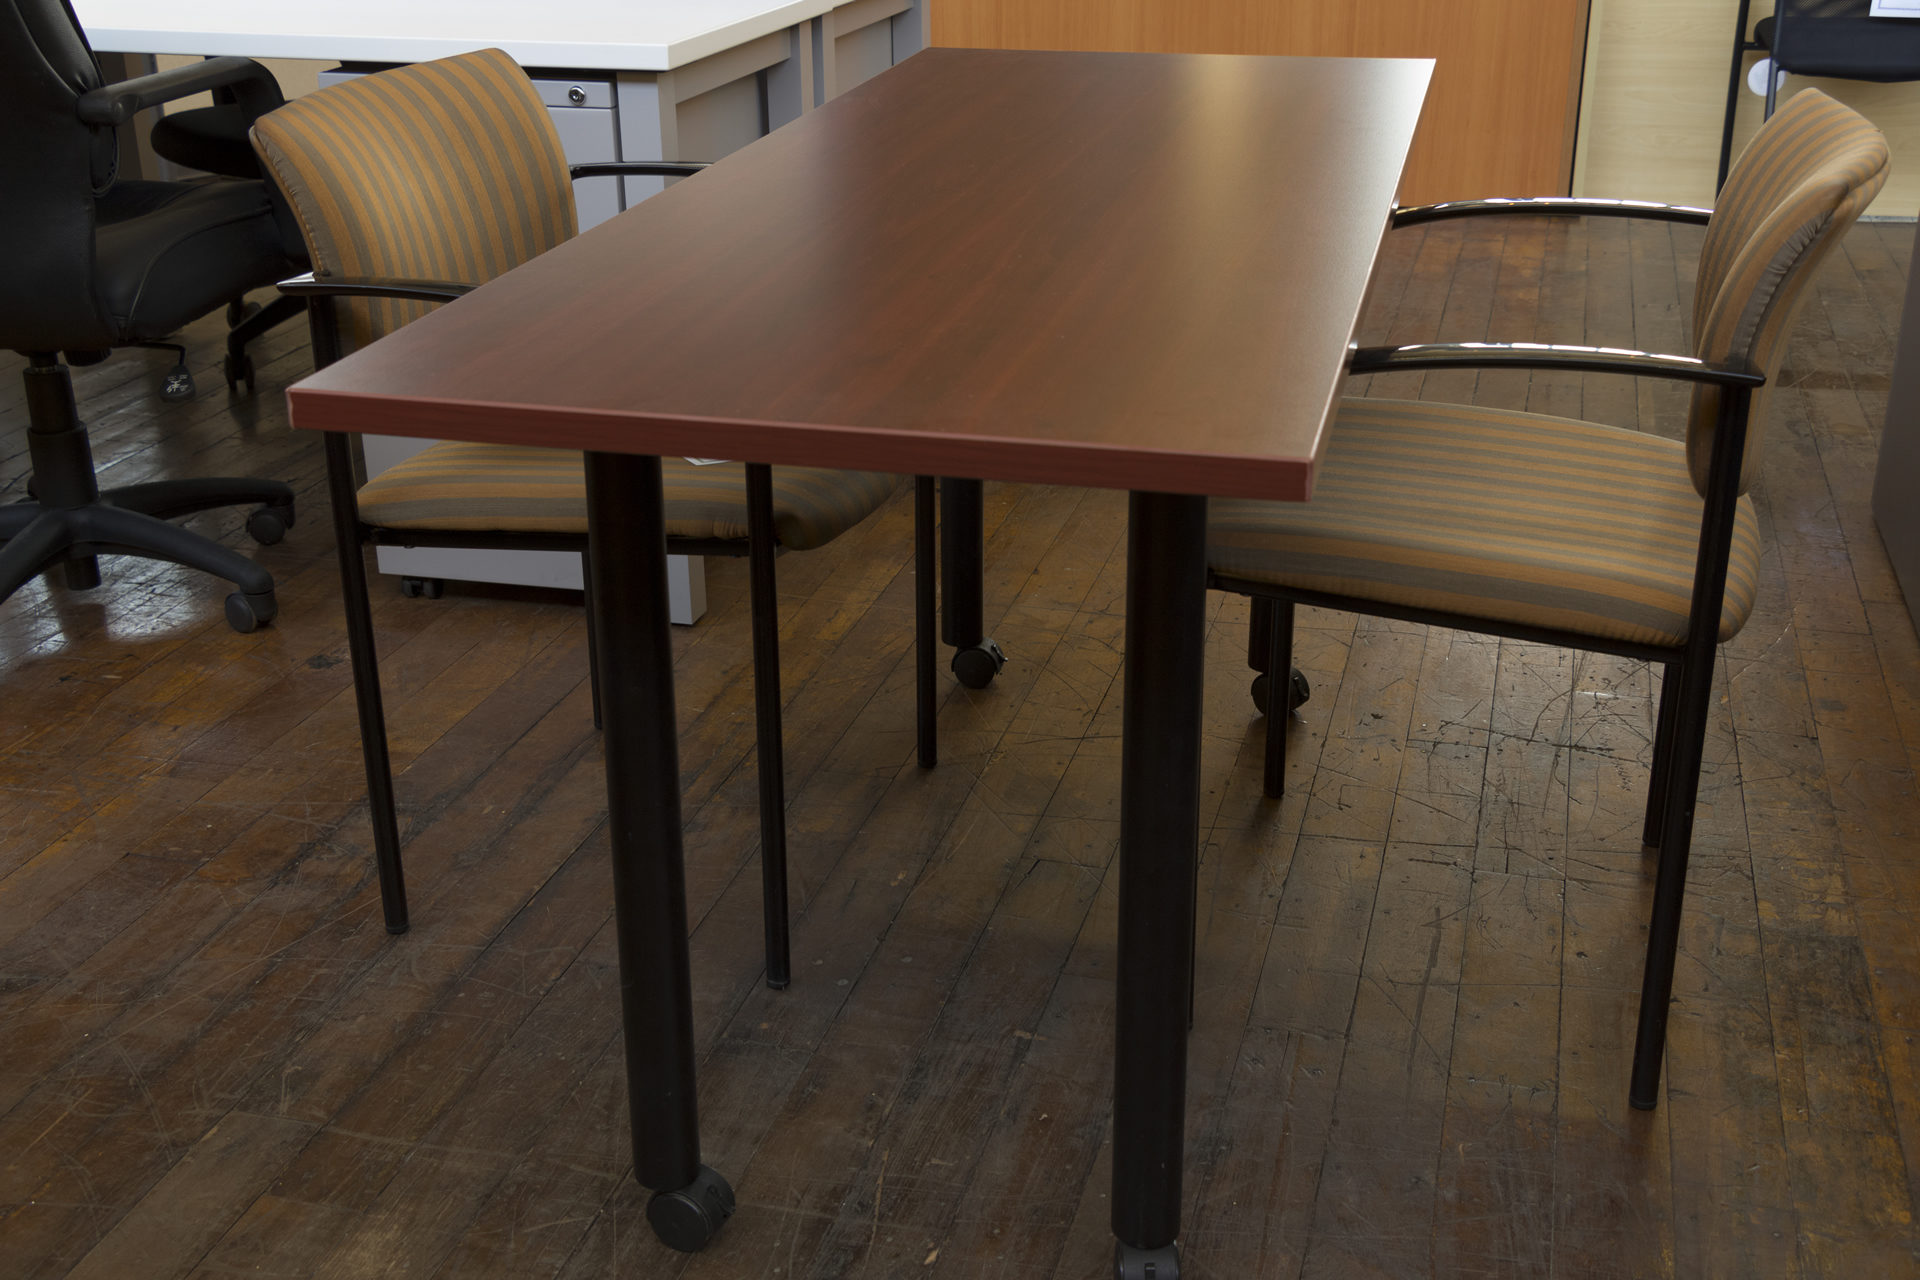 peartreeofficefurniture_peartreeofficefurniture_mta3.jpg